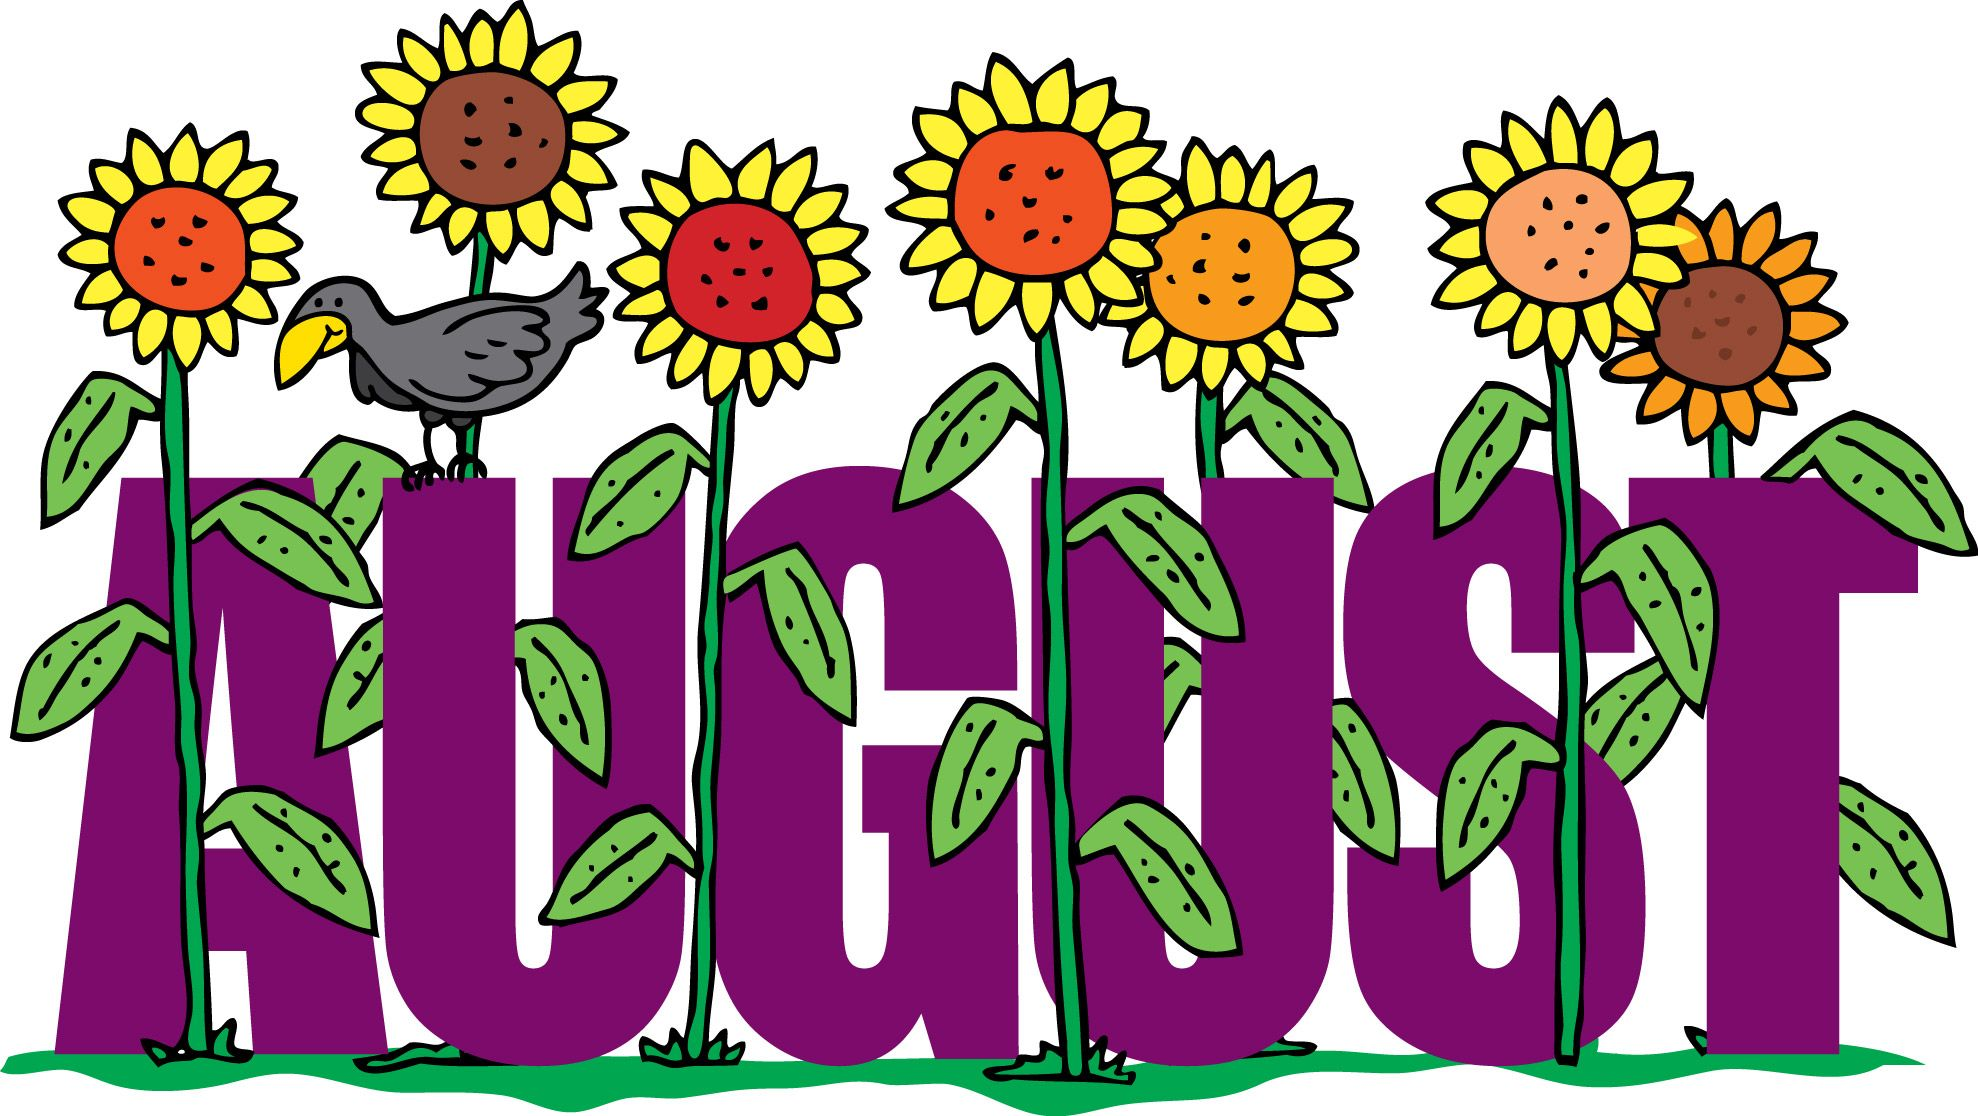 medium resolution of august floral clipart for screen saver